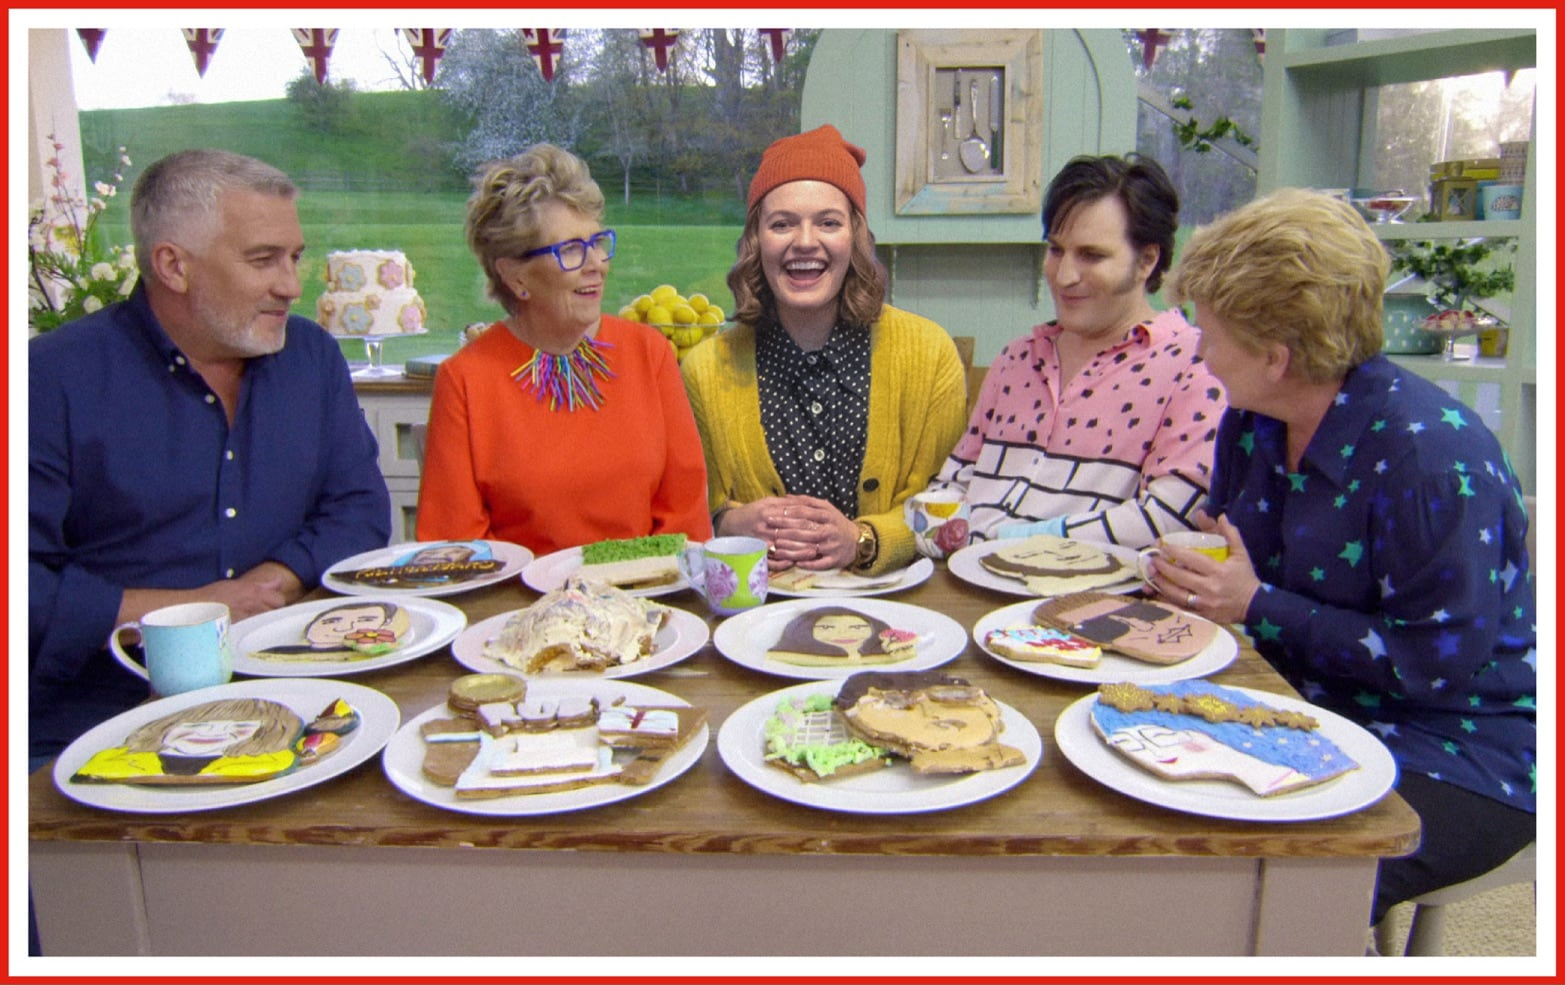 Jo Ellen Pellman as Emma from The Prom makes an imagined cameo in one of her favorite series this year, The Great British Baking Show.